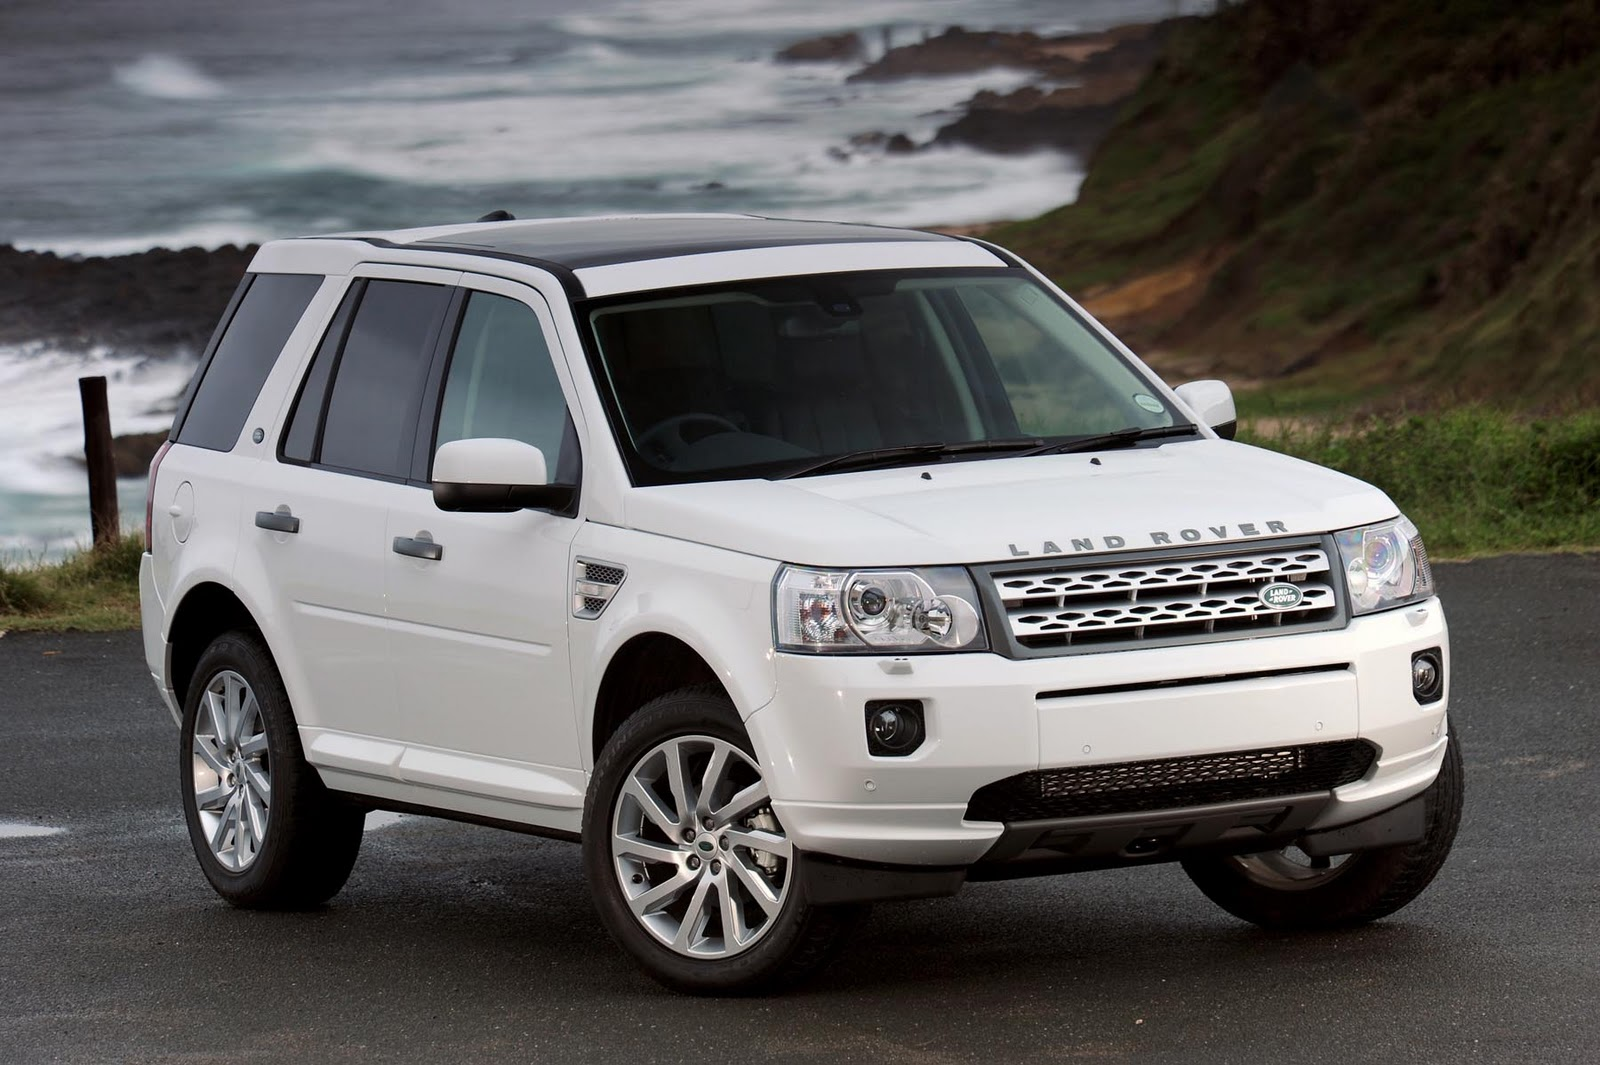 Land Rover Freelander White HD Wallpapers Download